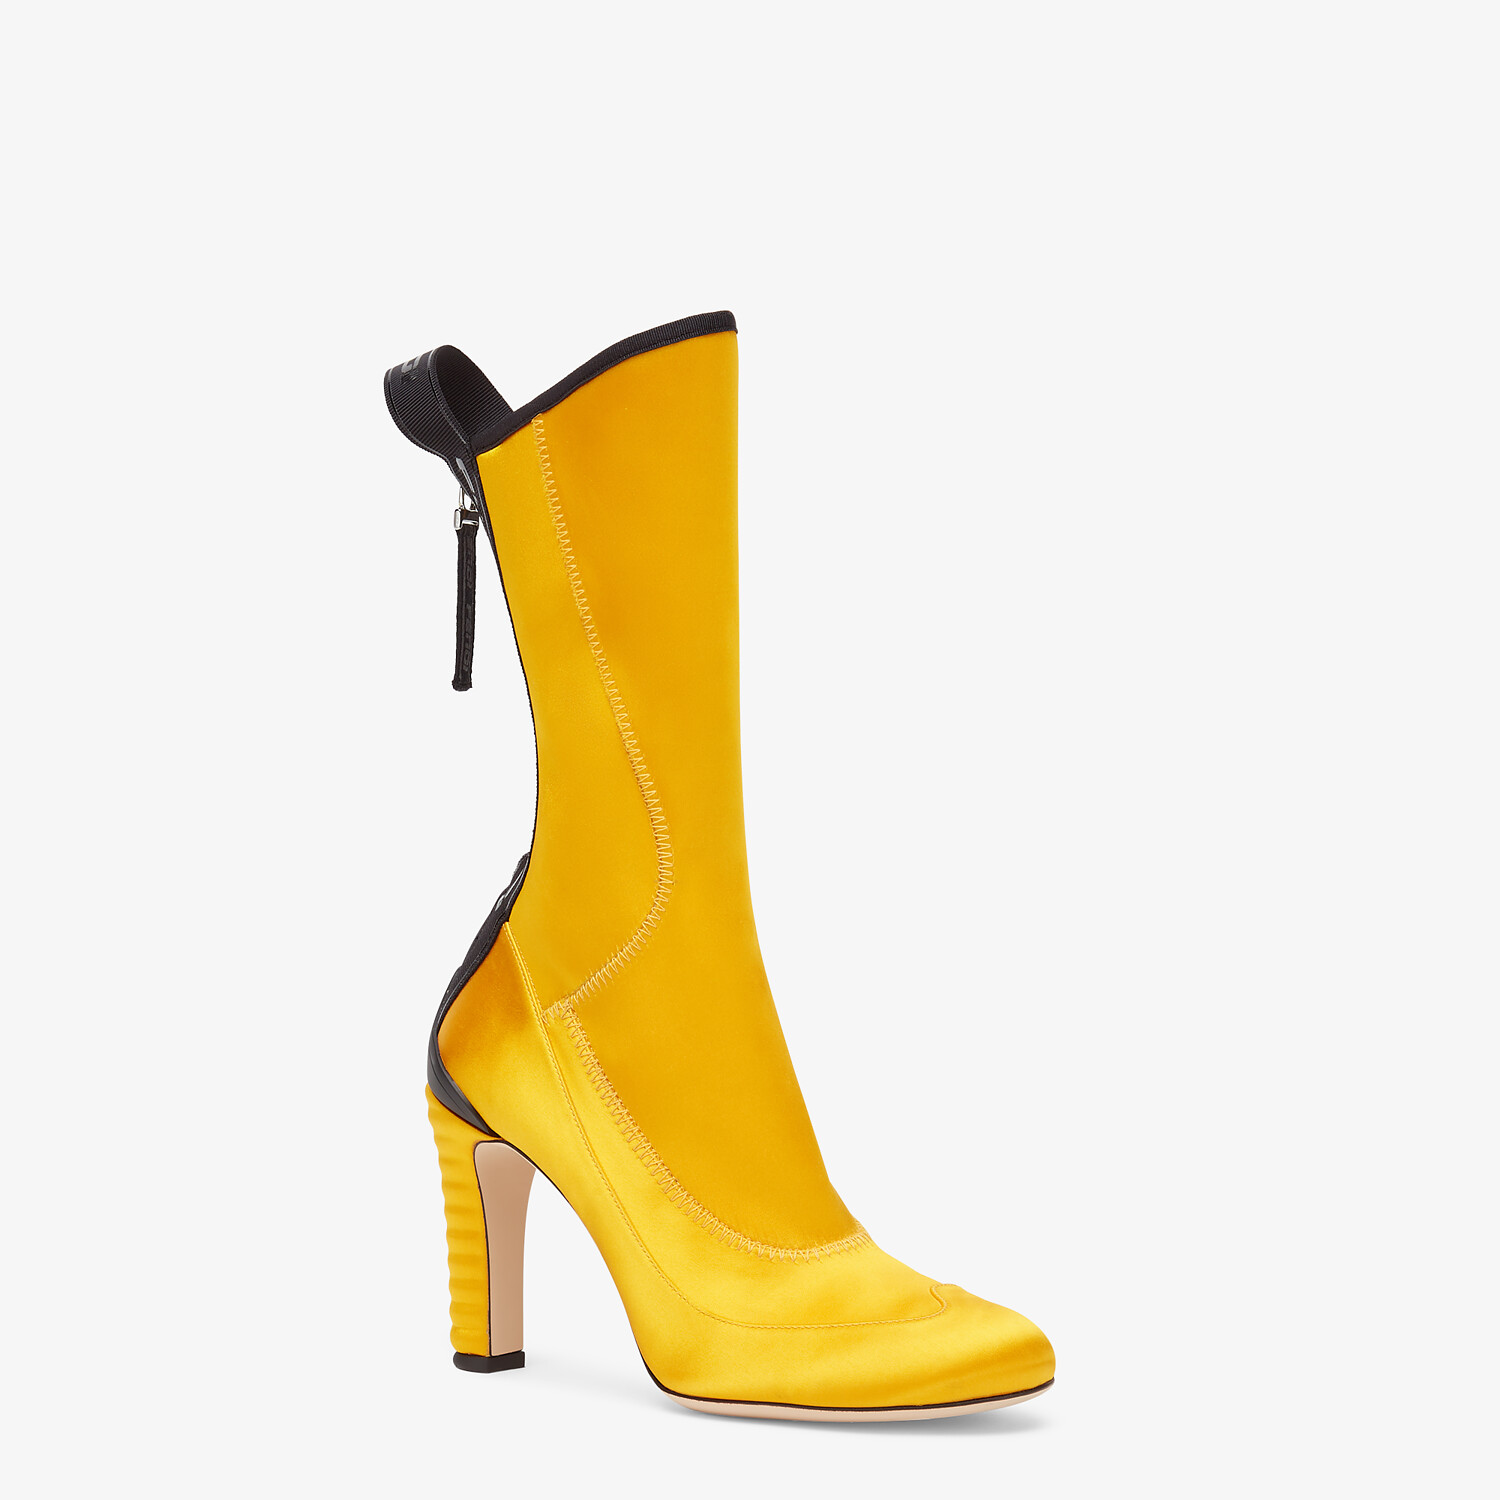 FENDI ANKLE BOOTS - Promenade Booties in yellow tech satin - view 2 detail